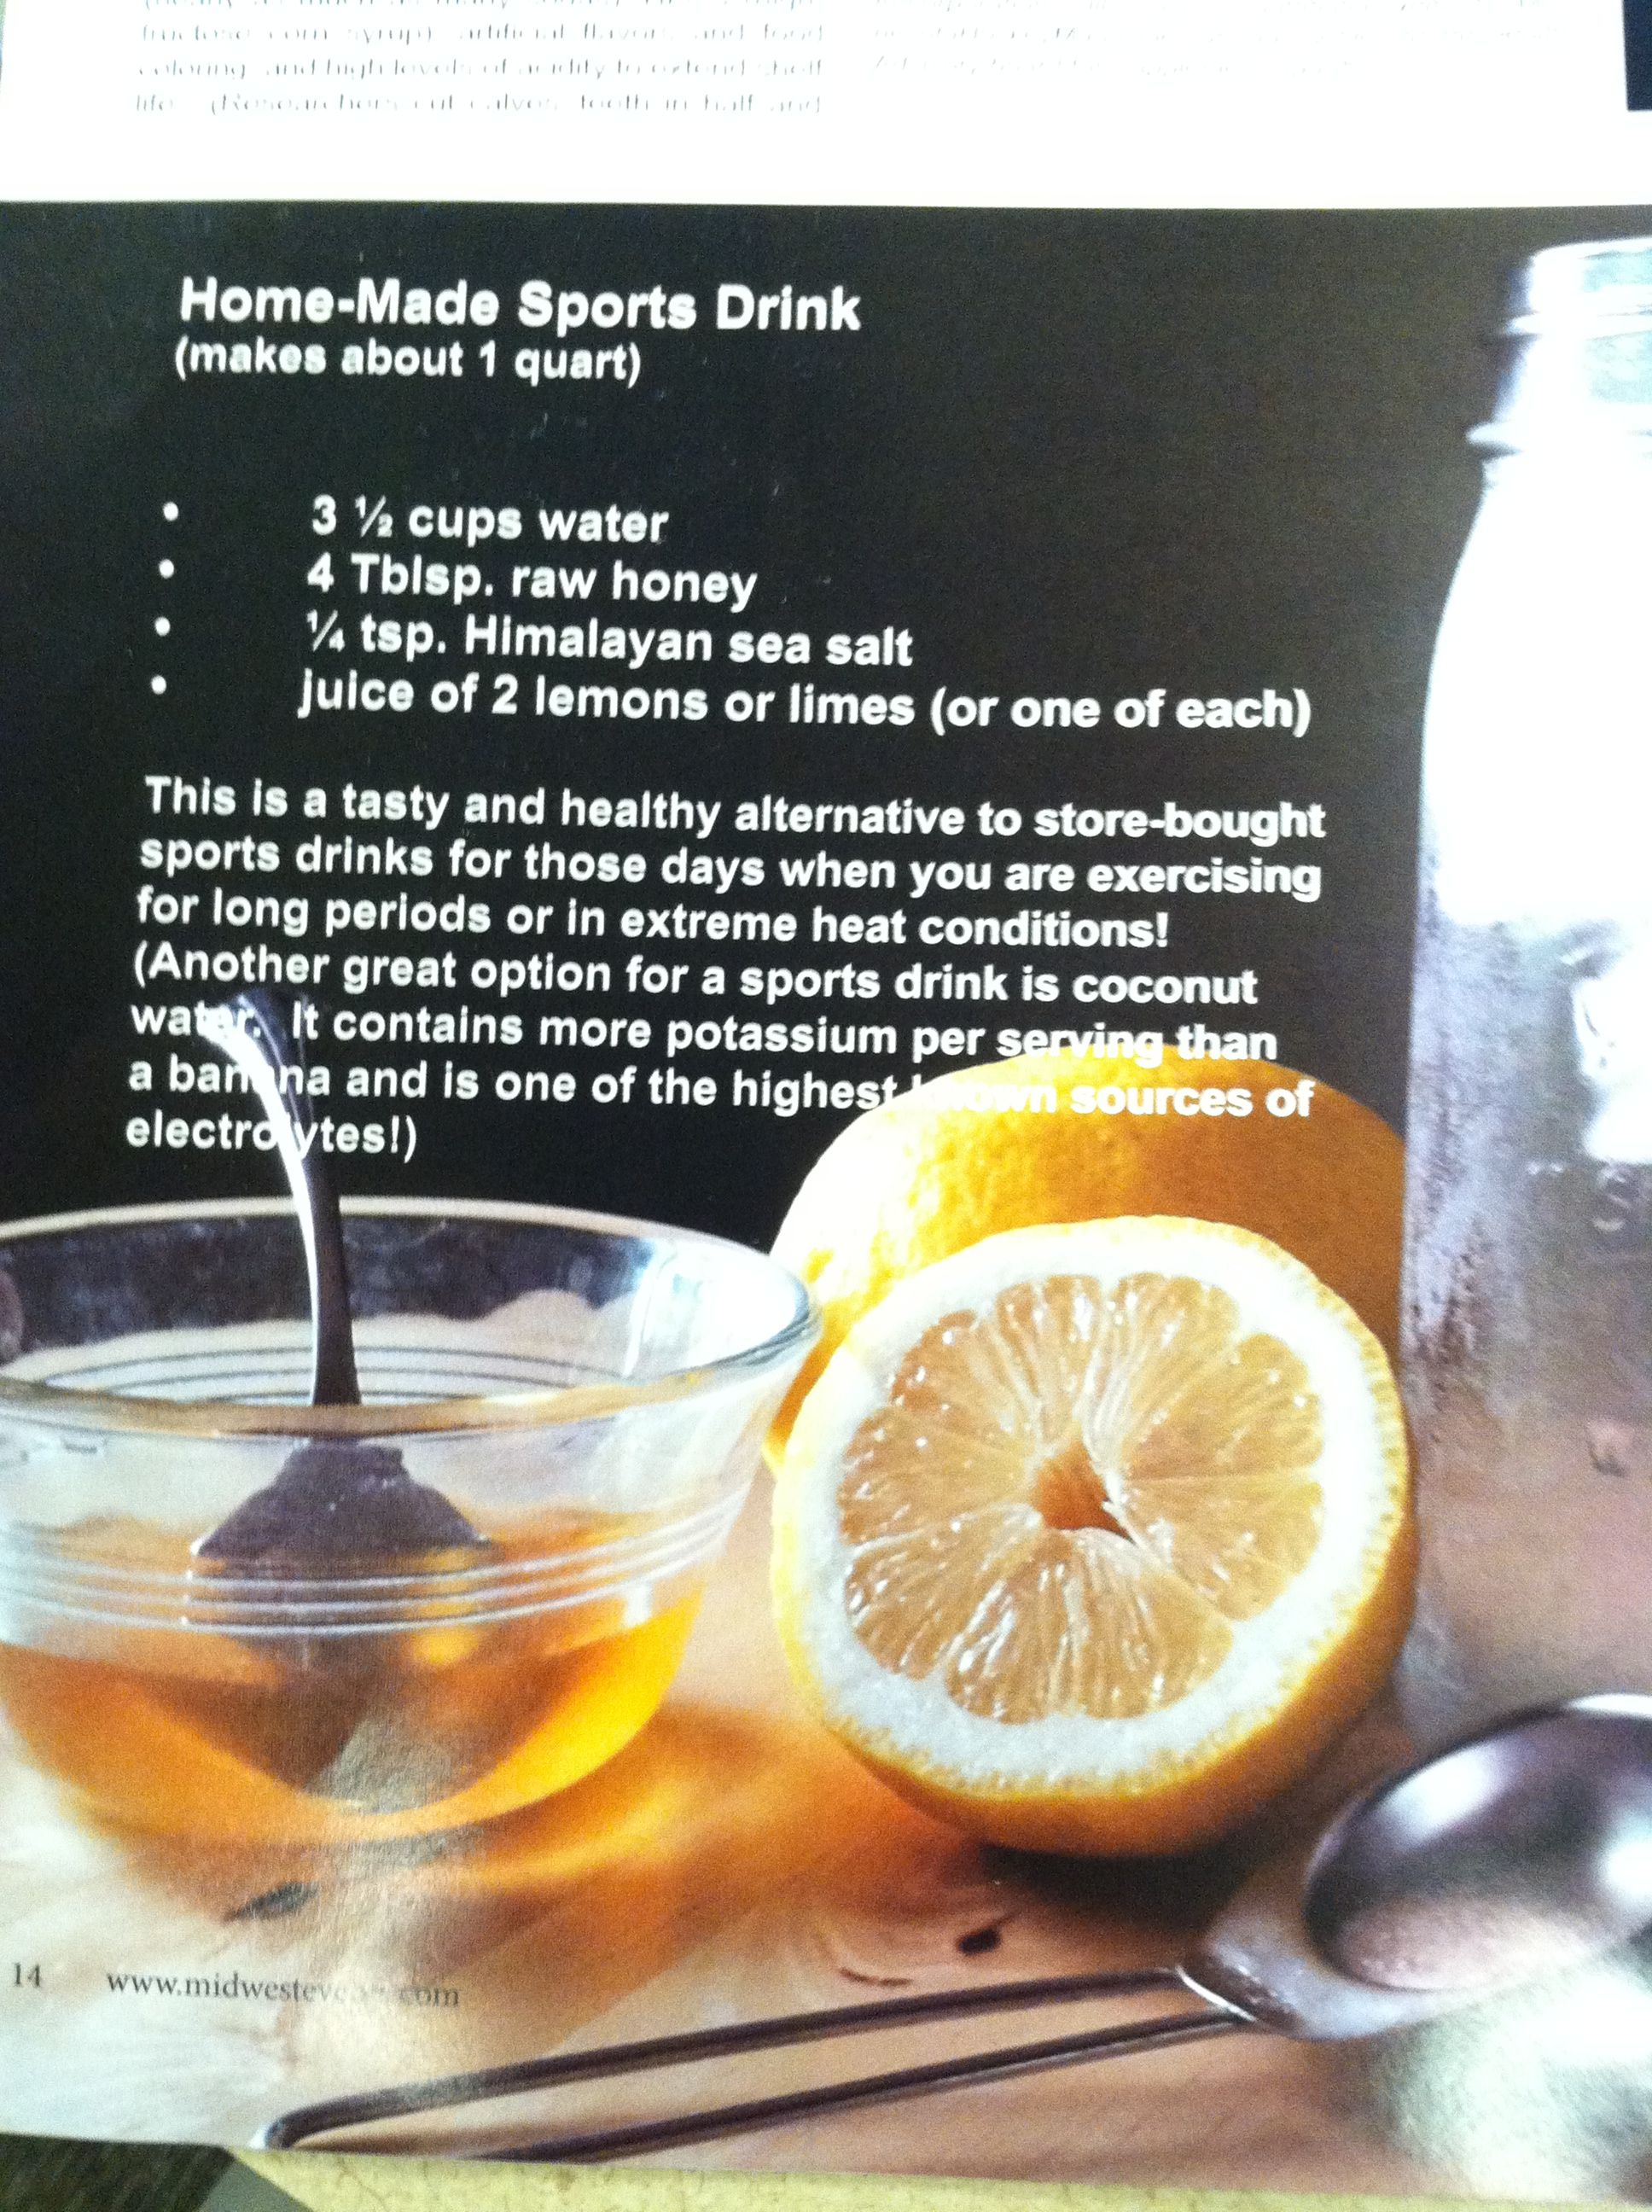 In love with this all natural sports drink substitute